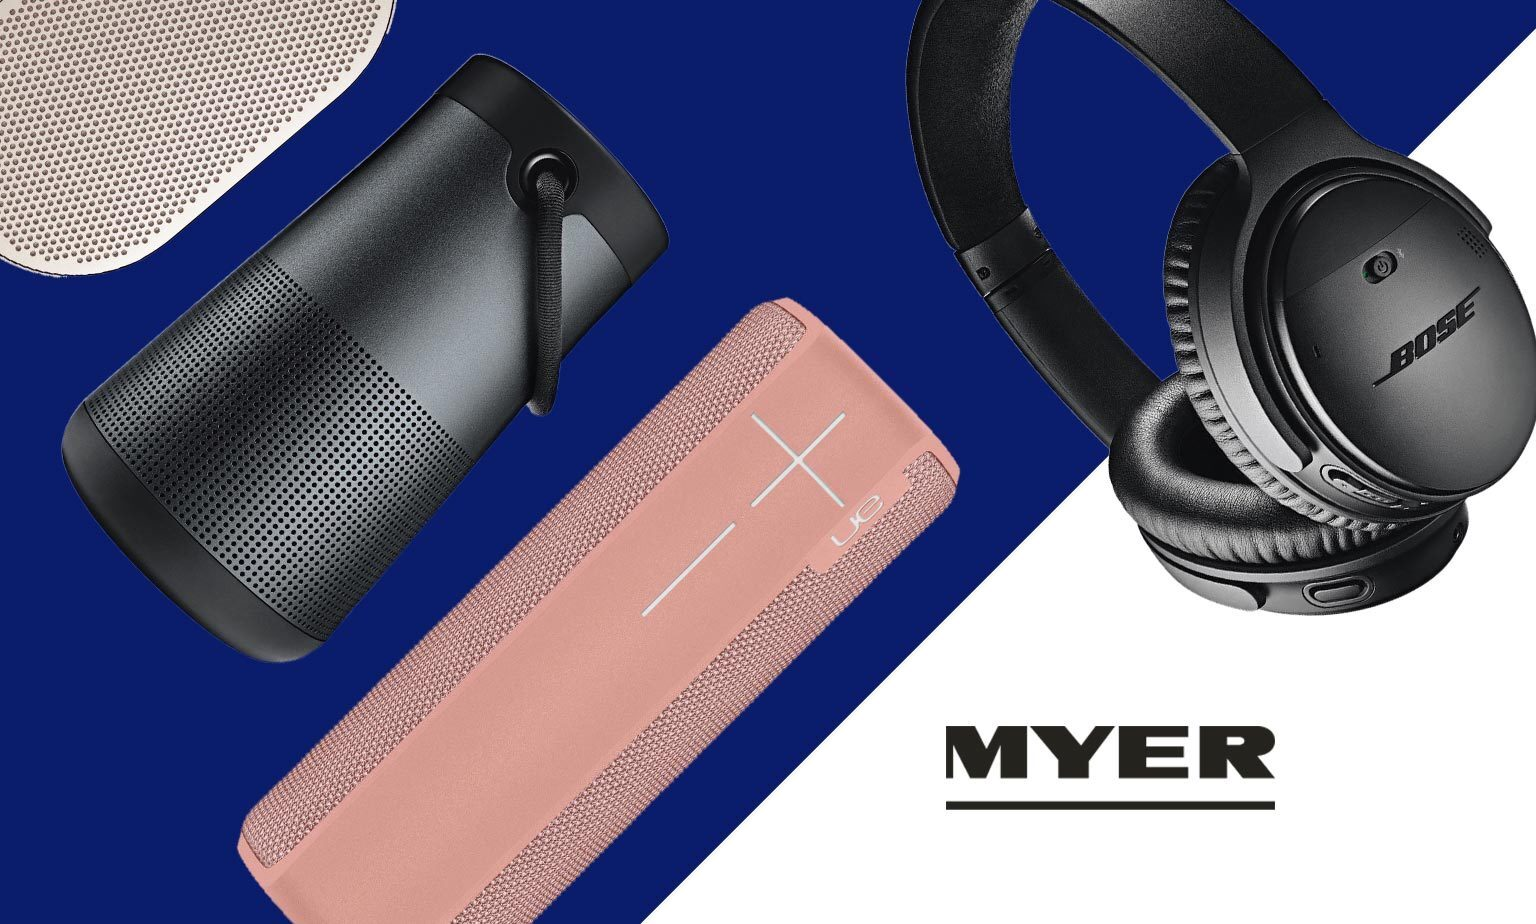 The Myer Gift Guide